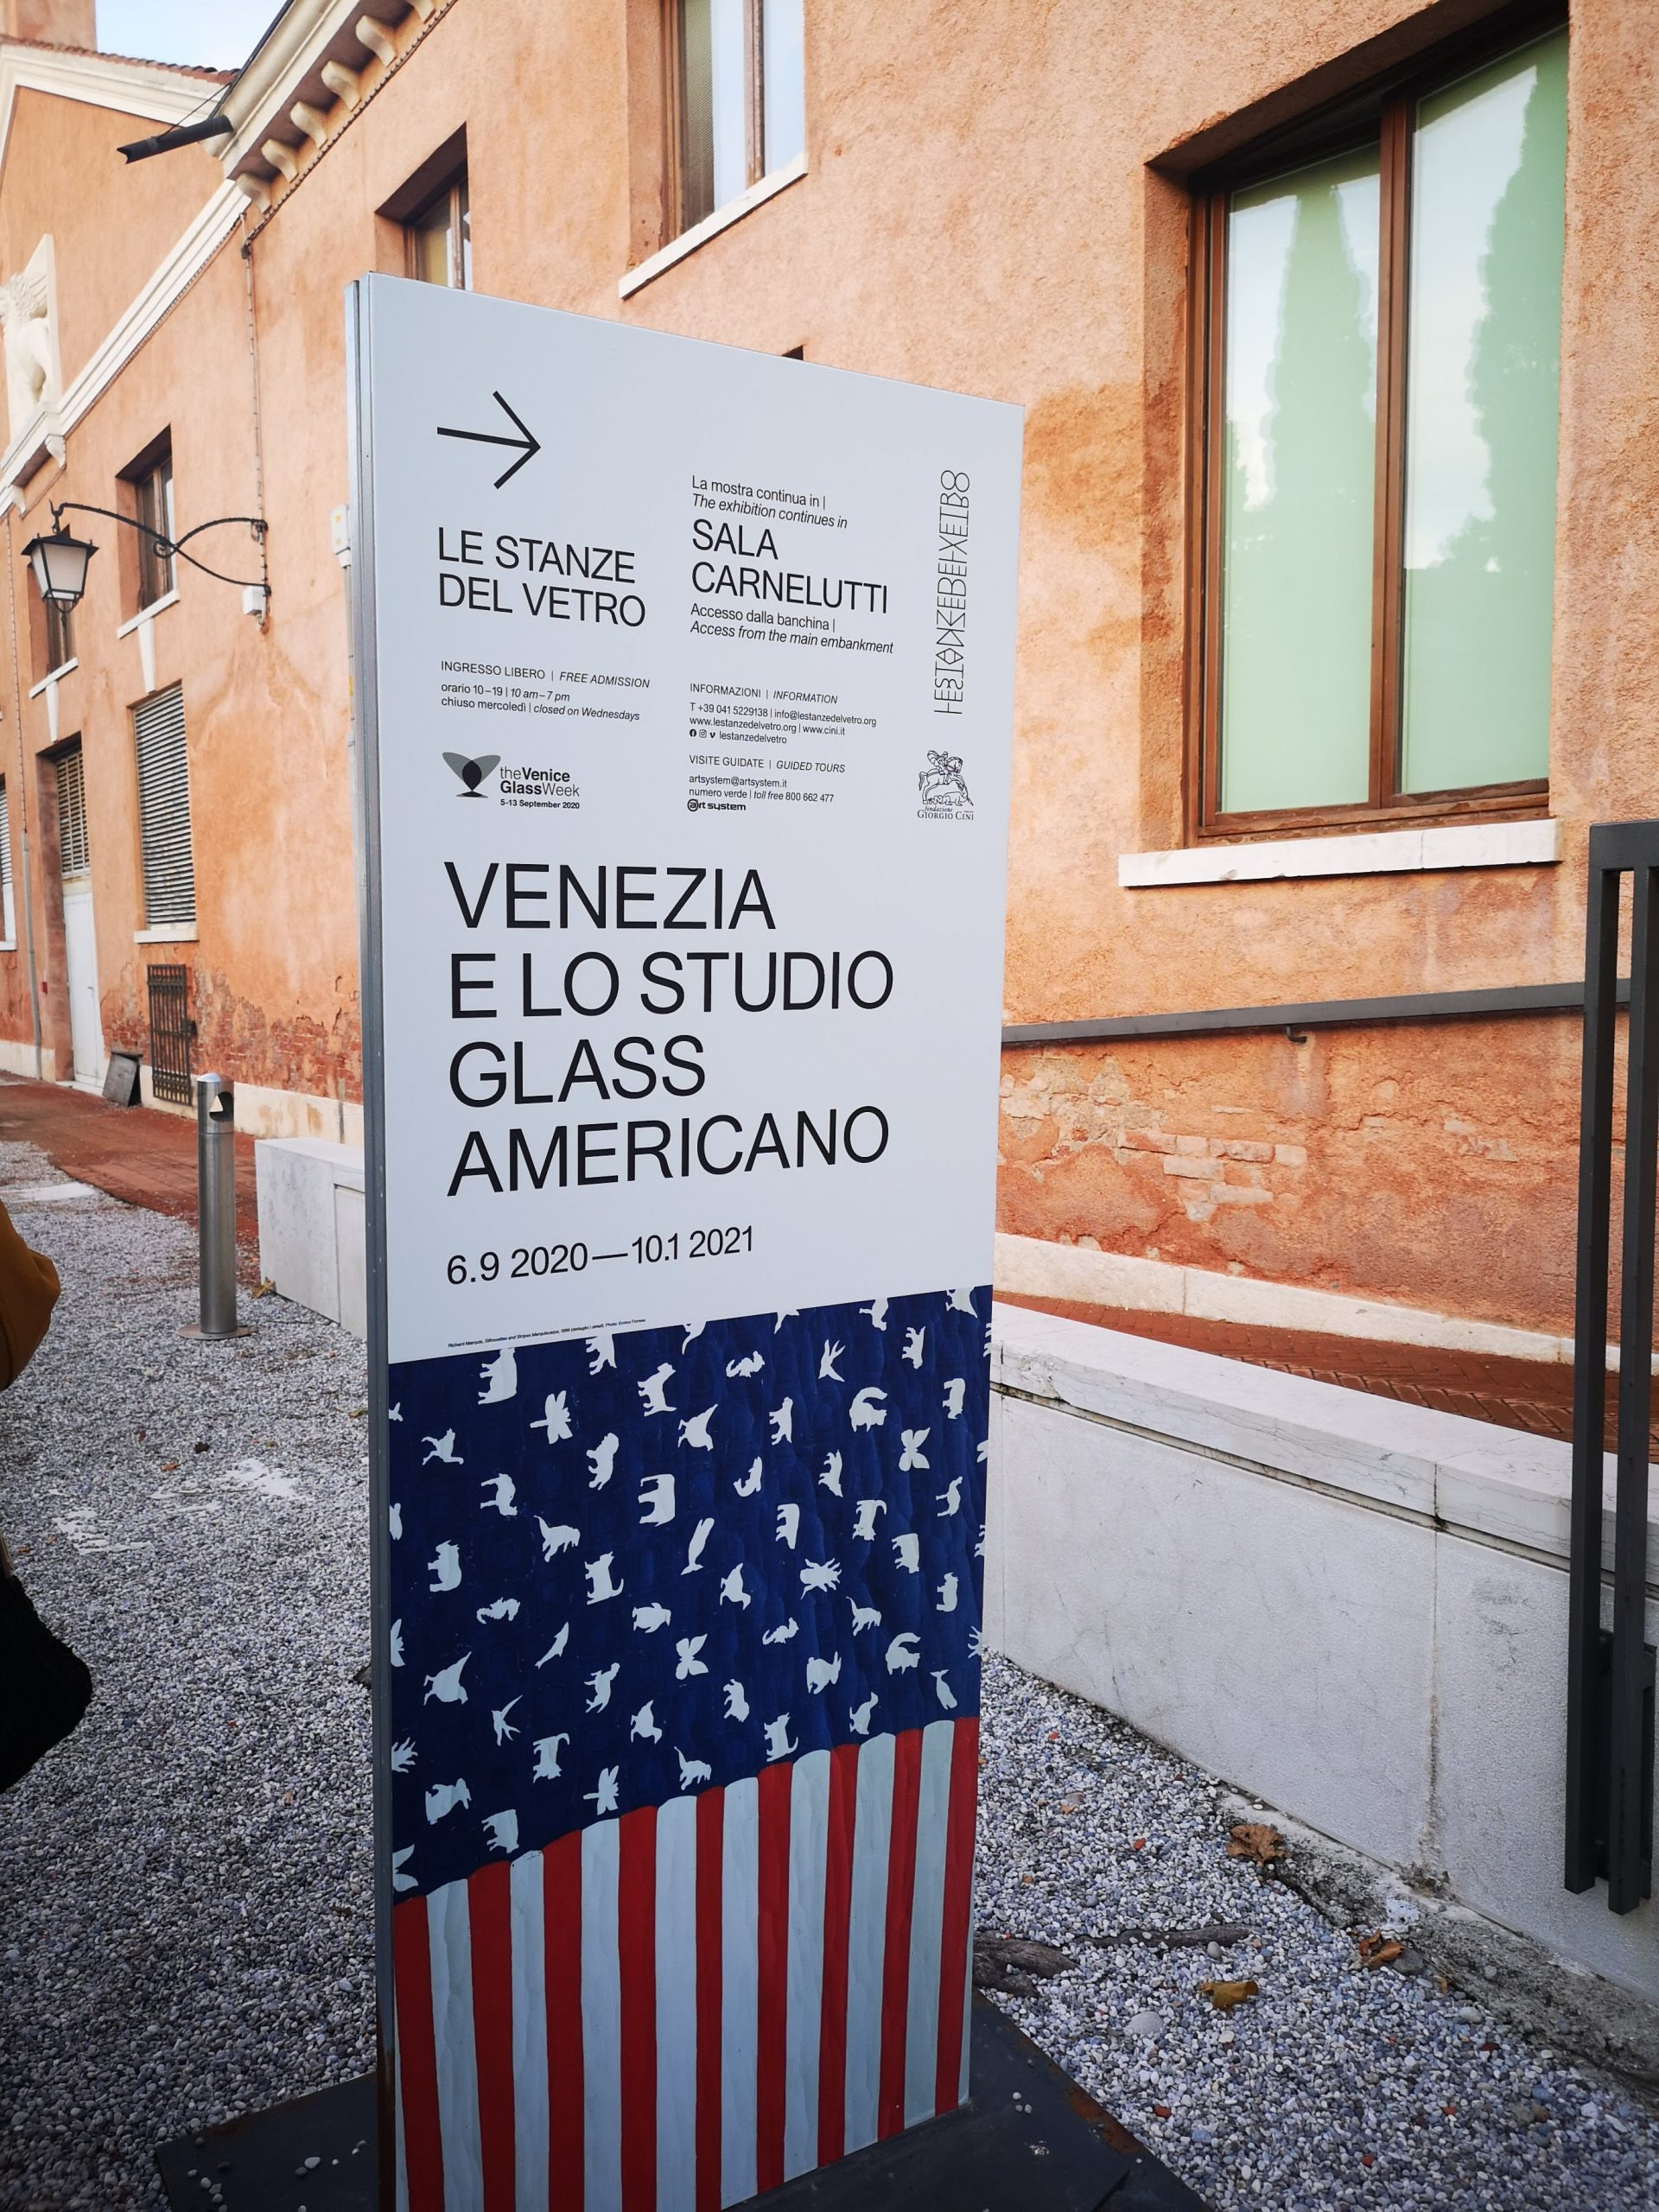 Venice and the american studio glass